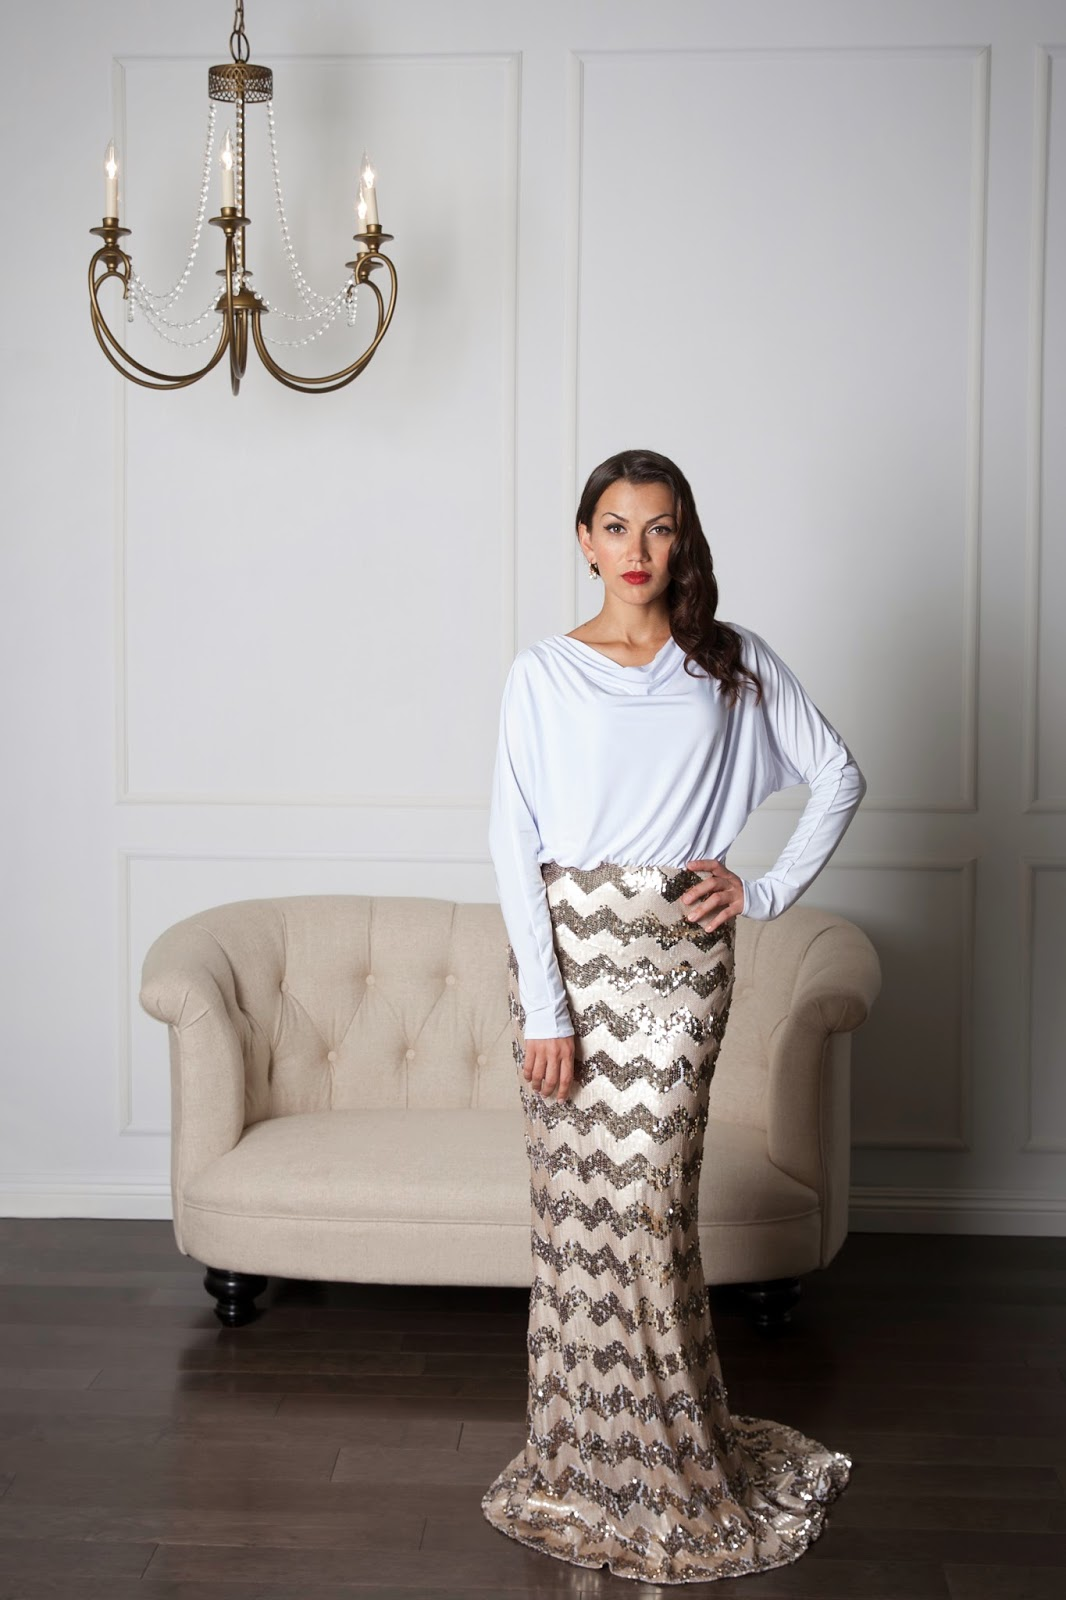 Modest long sleeve formal wear by Rayan | Mode-sty hijab tznius fashion